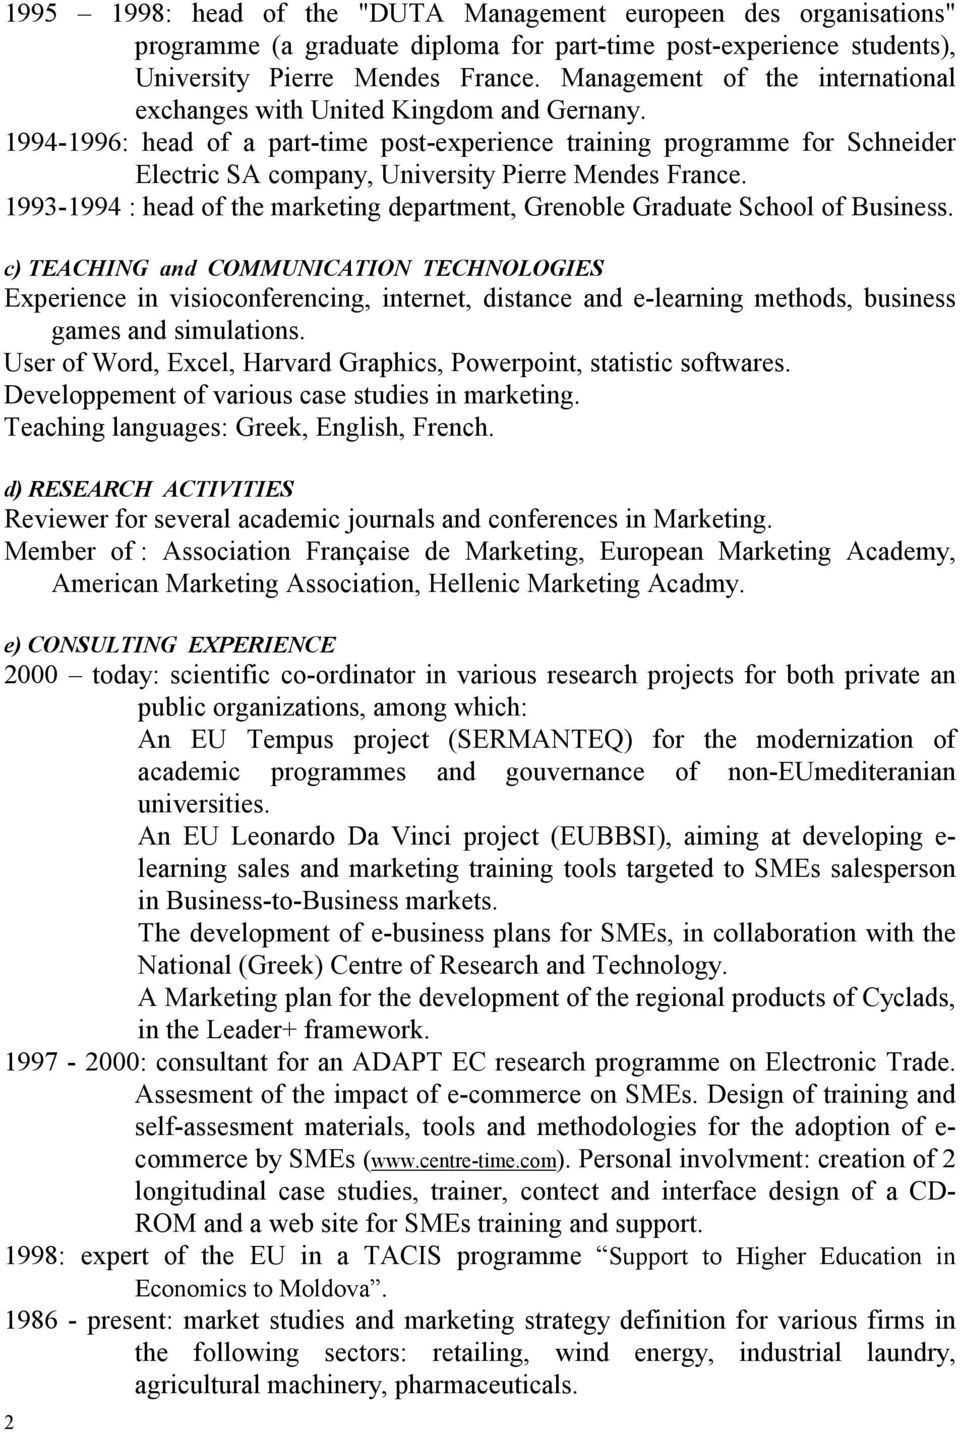 1994-1996: head of a part-time post-experience training programme for Schneider Electric SA company, University Pierre Mendes France.